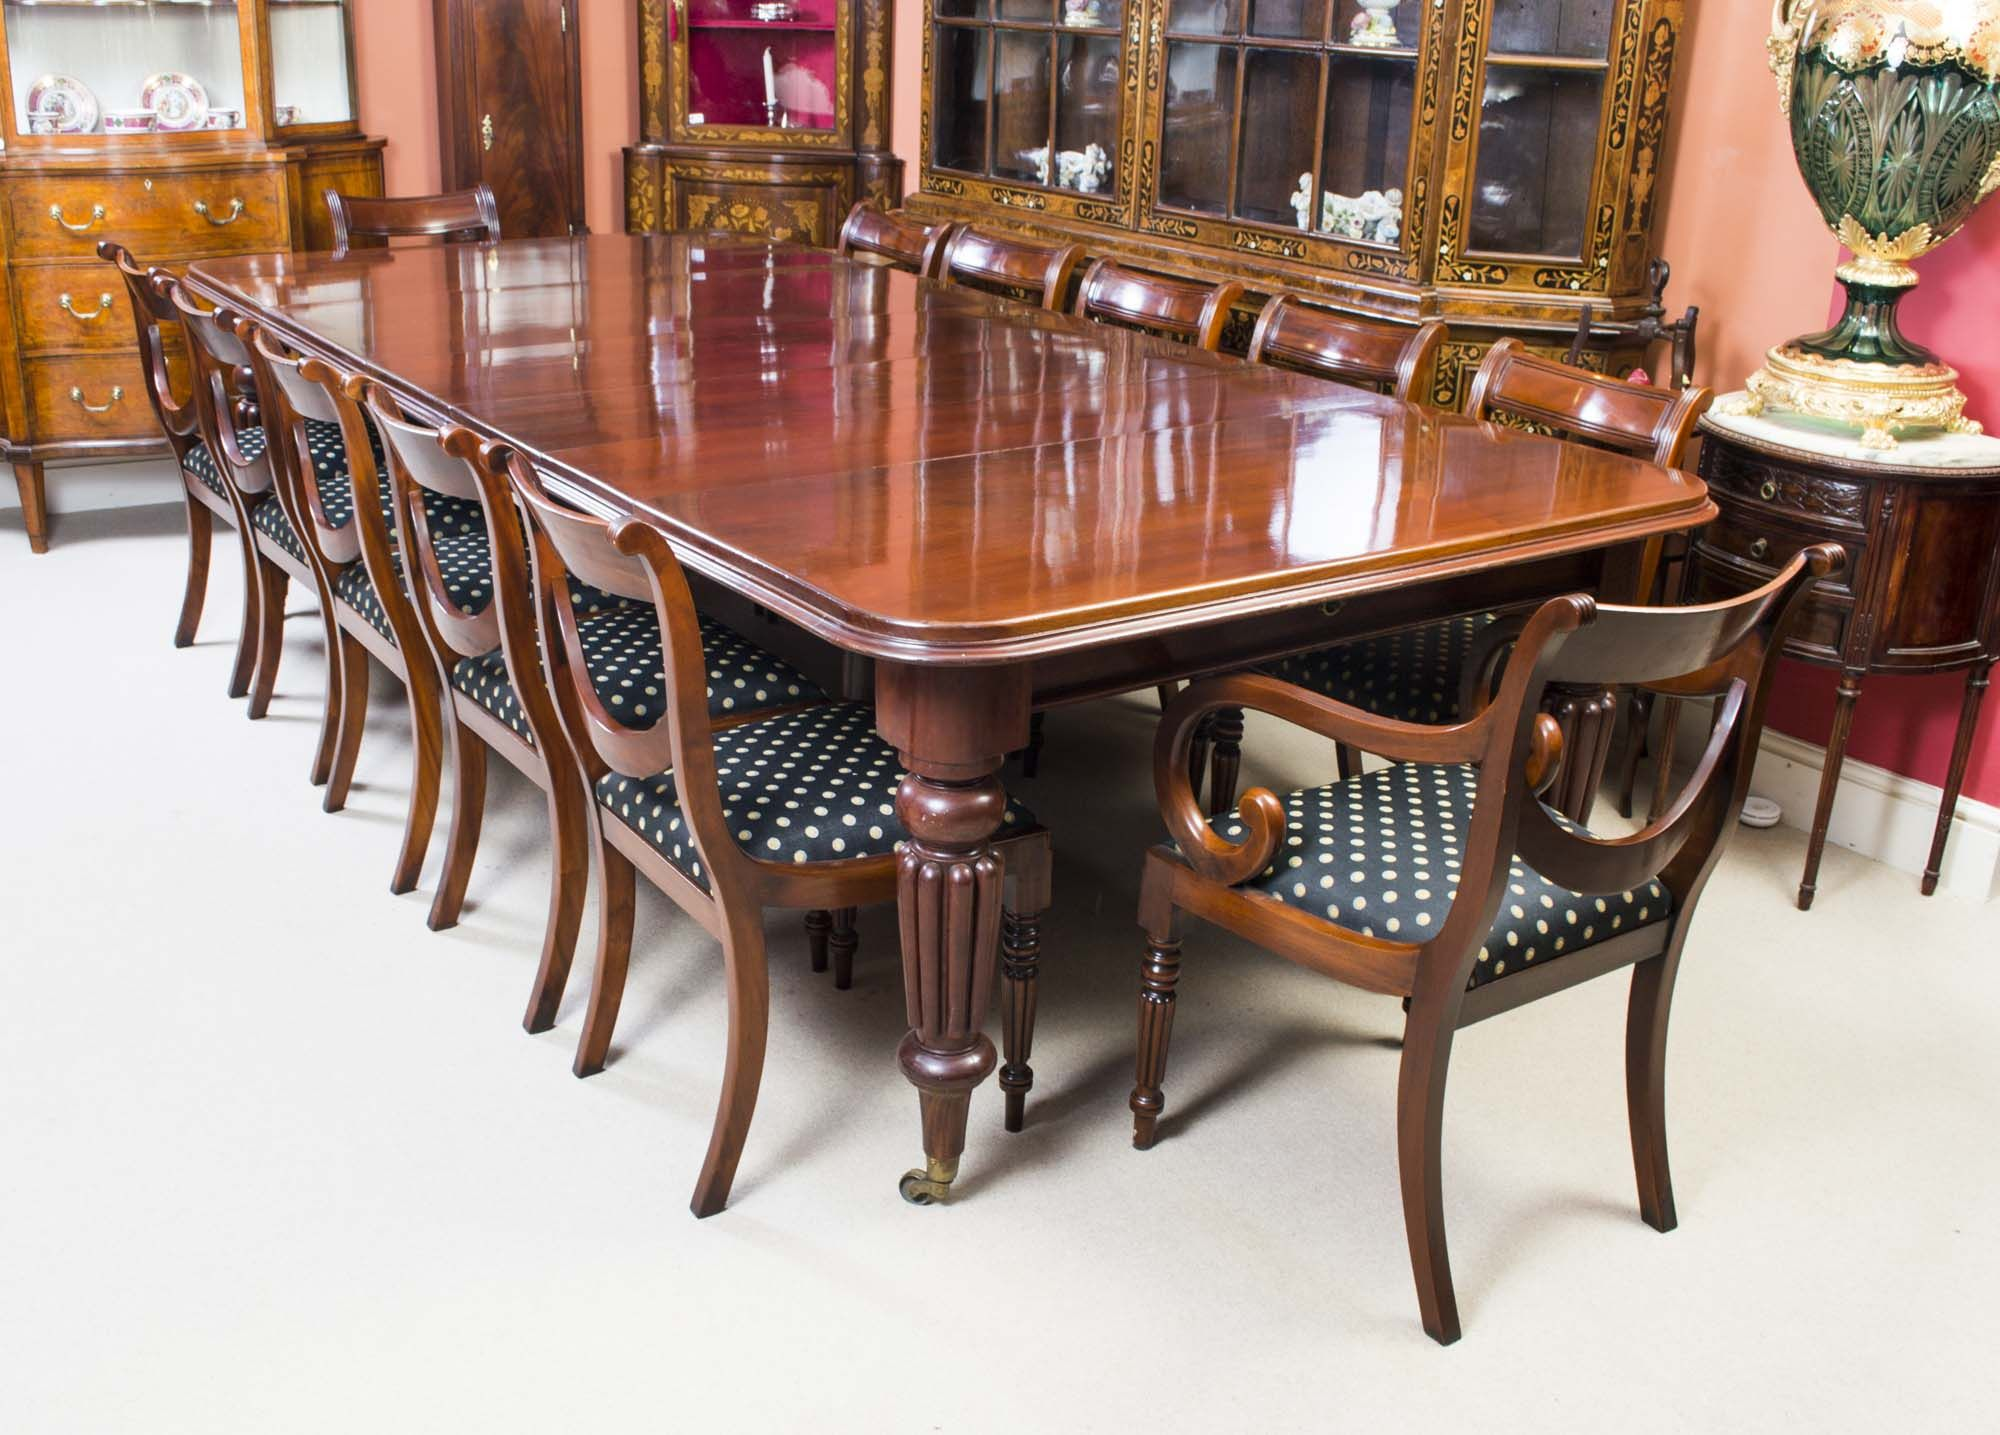 An antique Victorian dining table and chair set fit for a queen